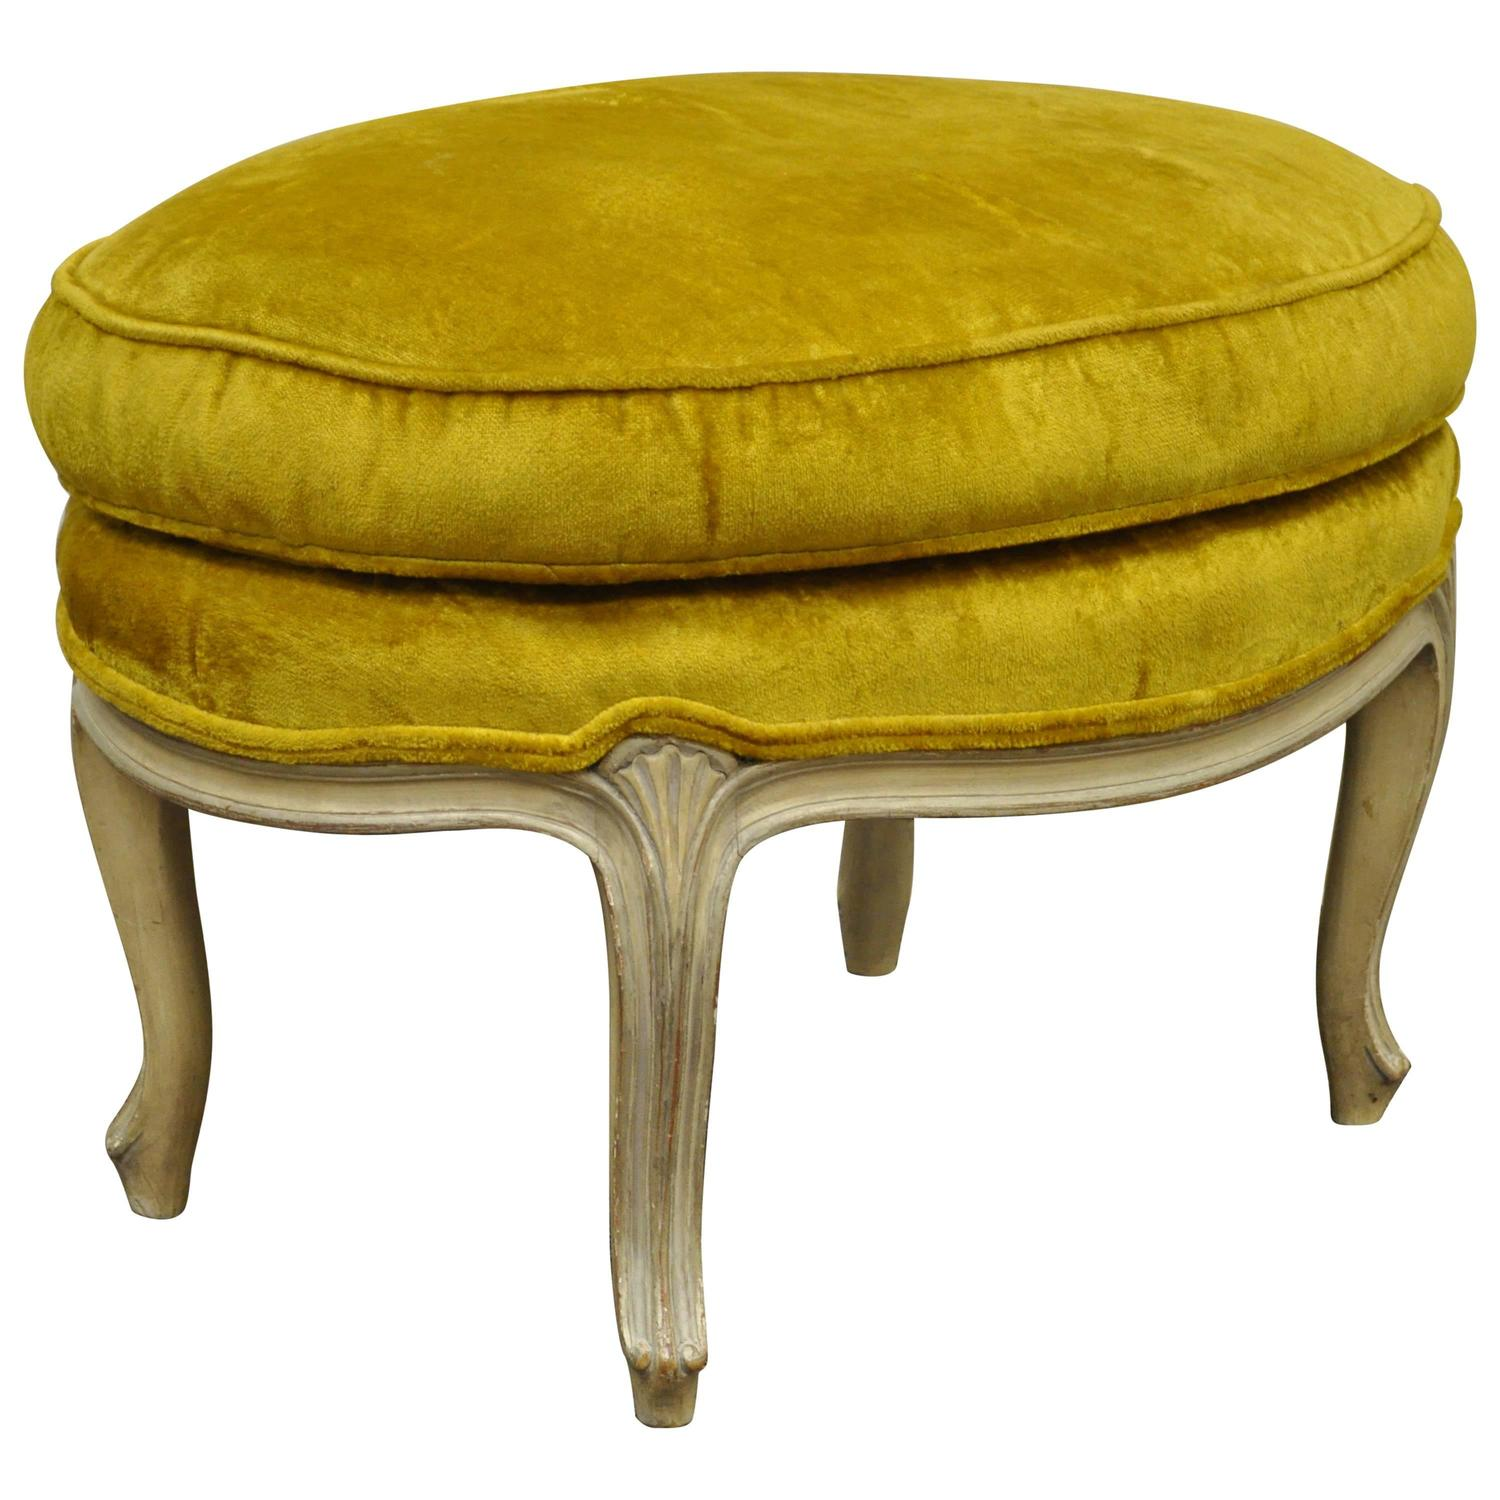 Vintage French Louis XV Style Cream Painted Overstuffed